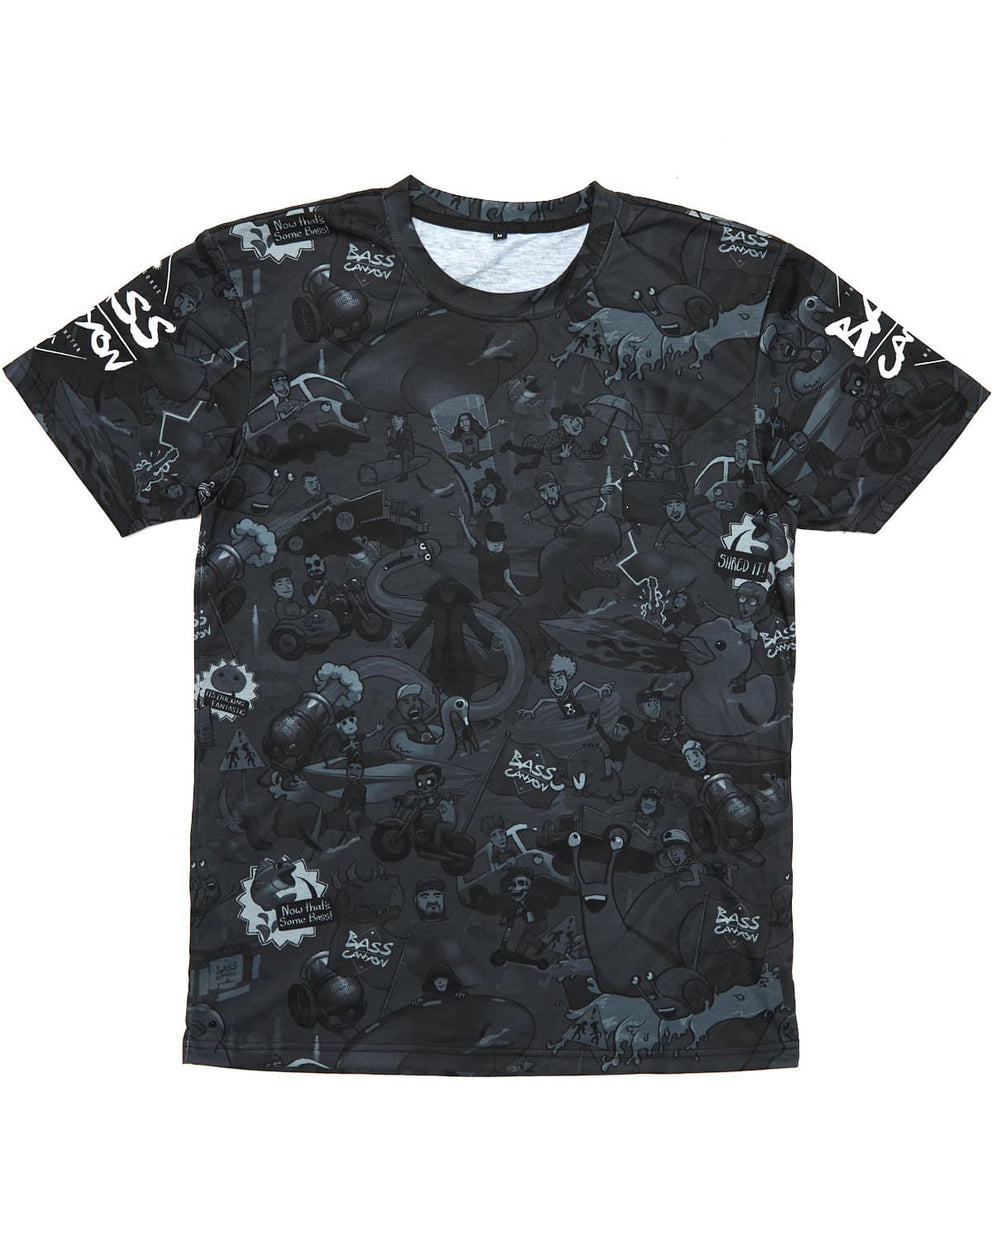 Bass Canyon 'Artists 2019' Dye-Sublimated Tee